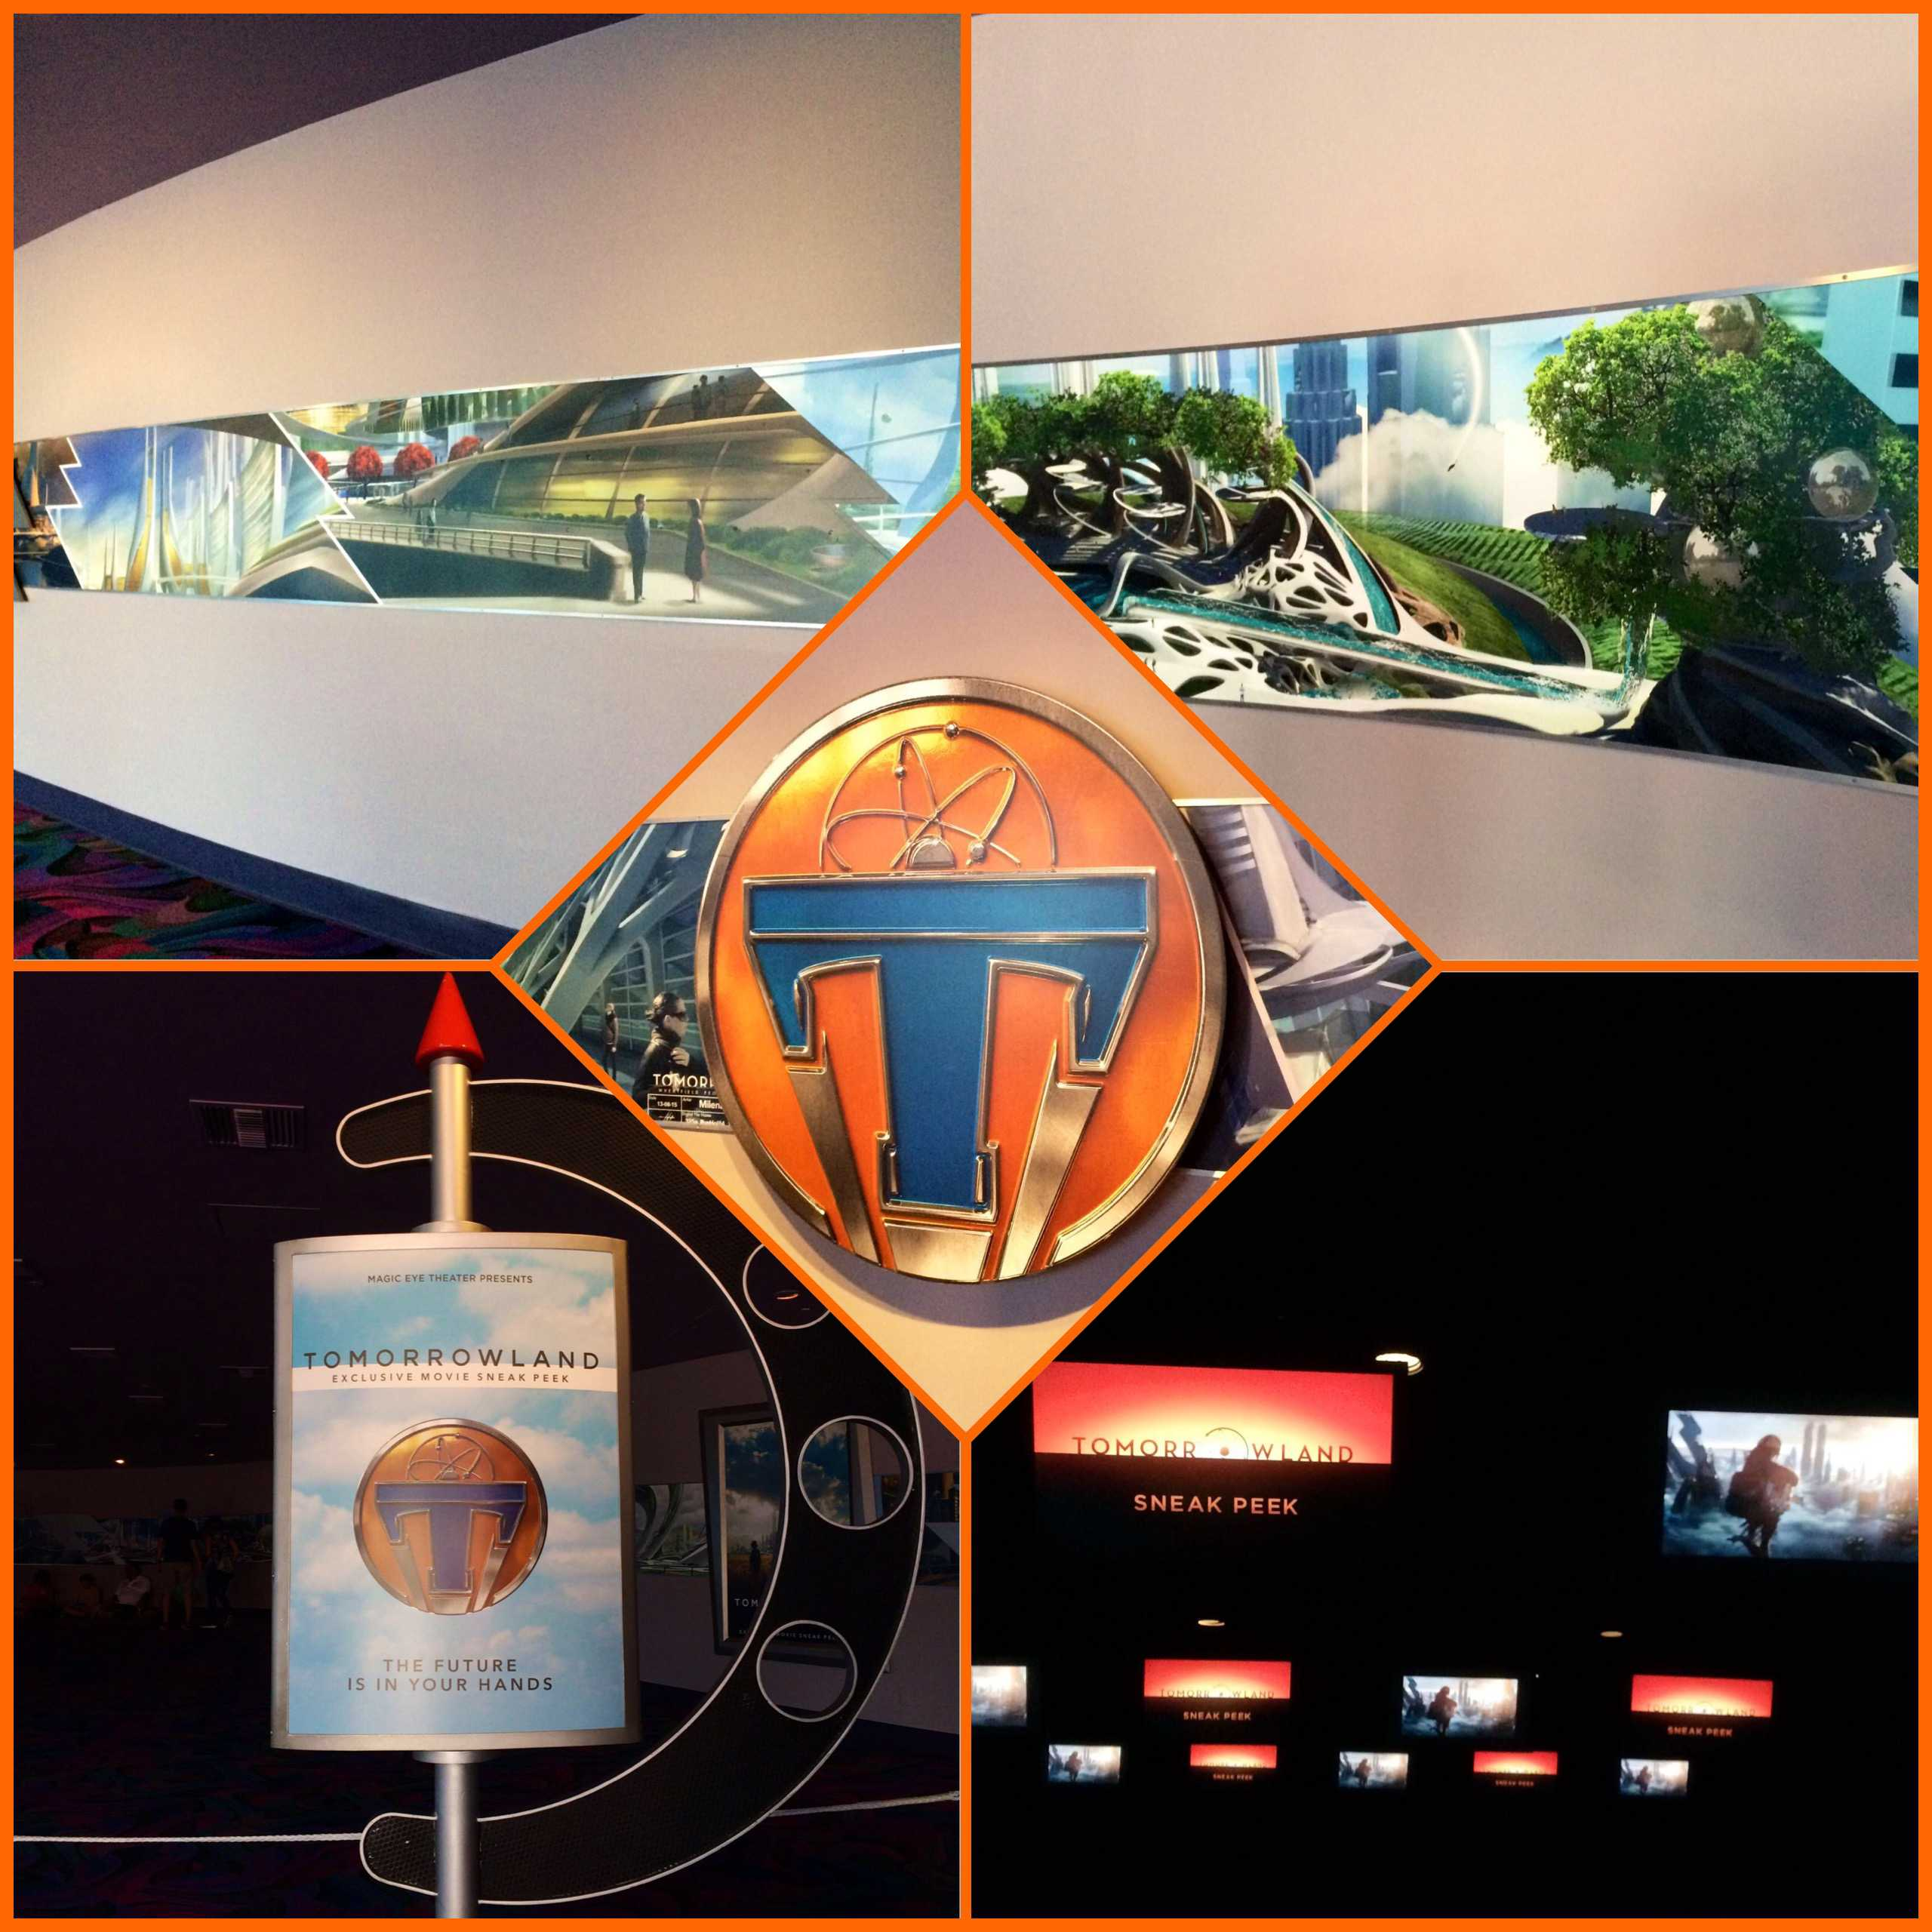 New Tomorrowland Movie Posters and Trailer – Review of the Epcot Sneak Peek